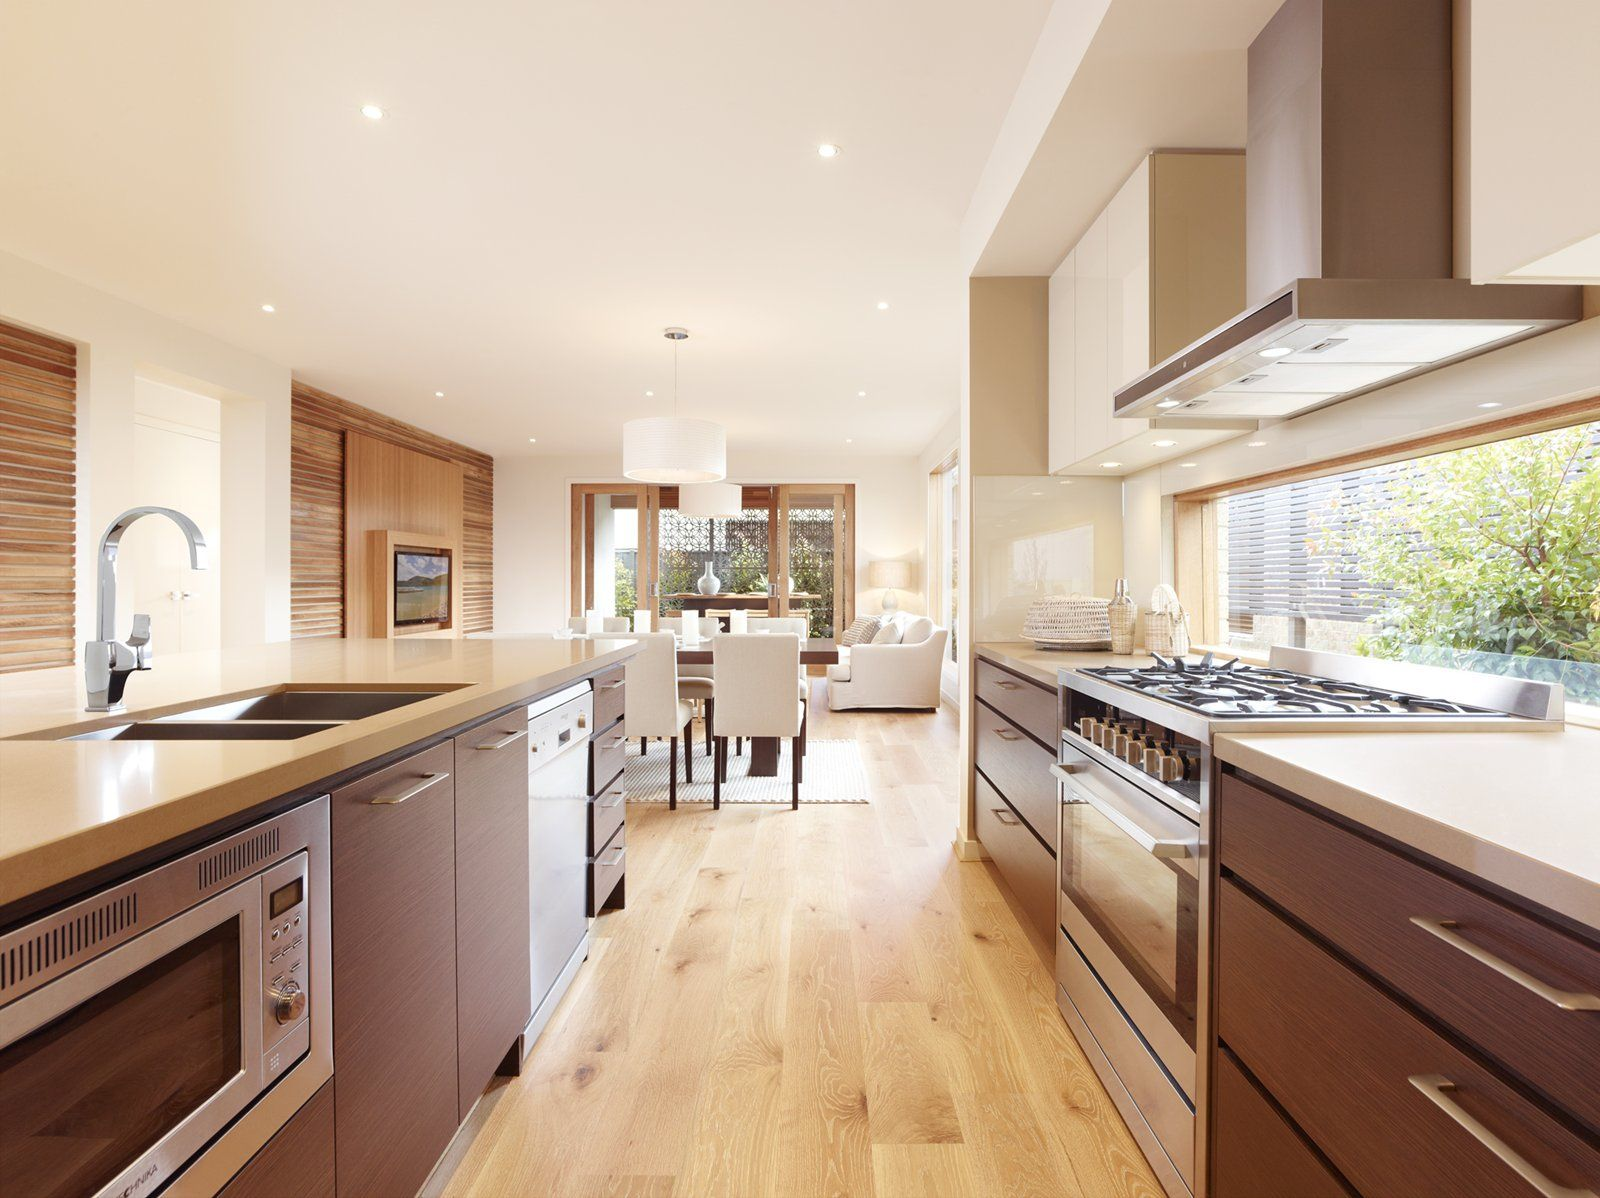 The Caspian Main Vue Kitchen Design